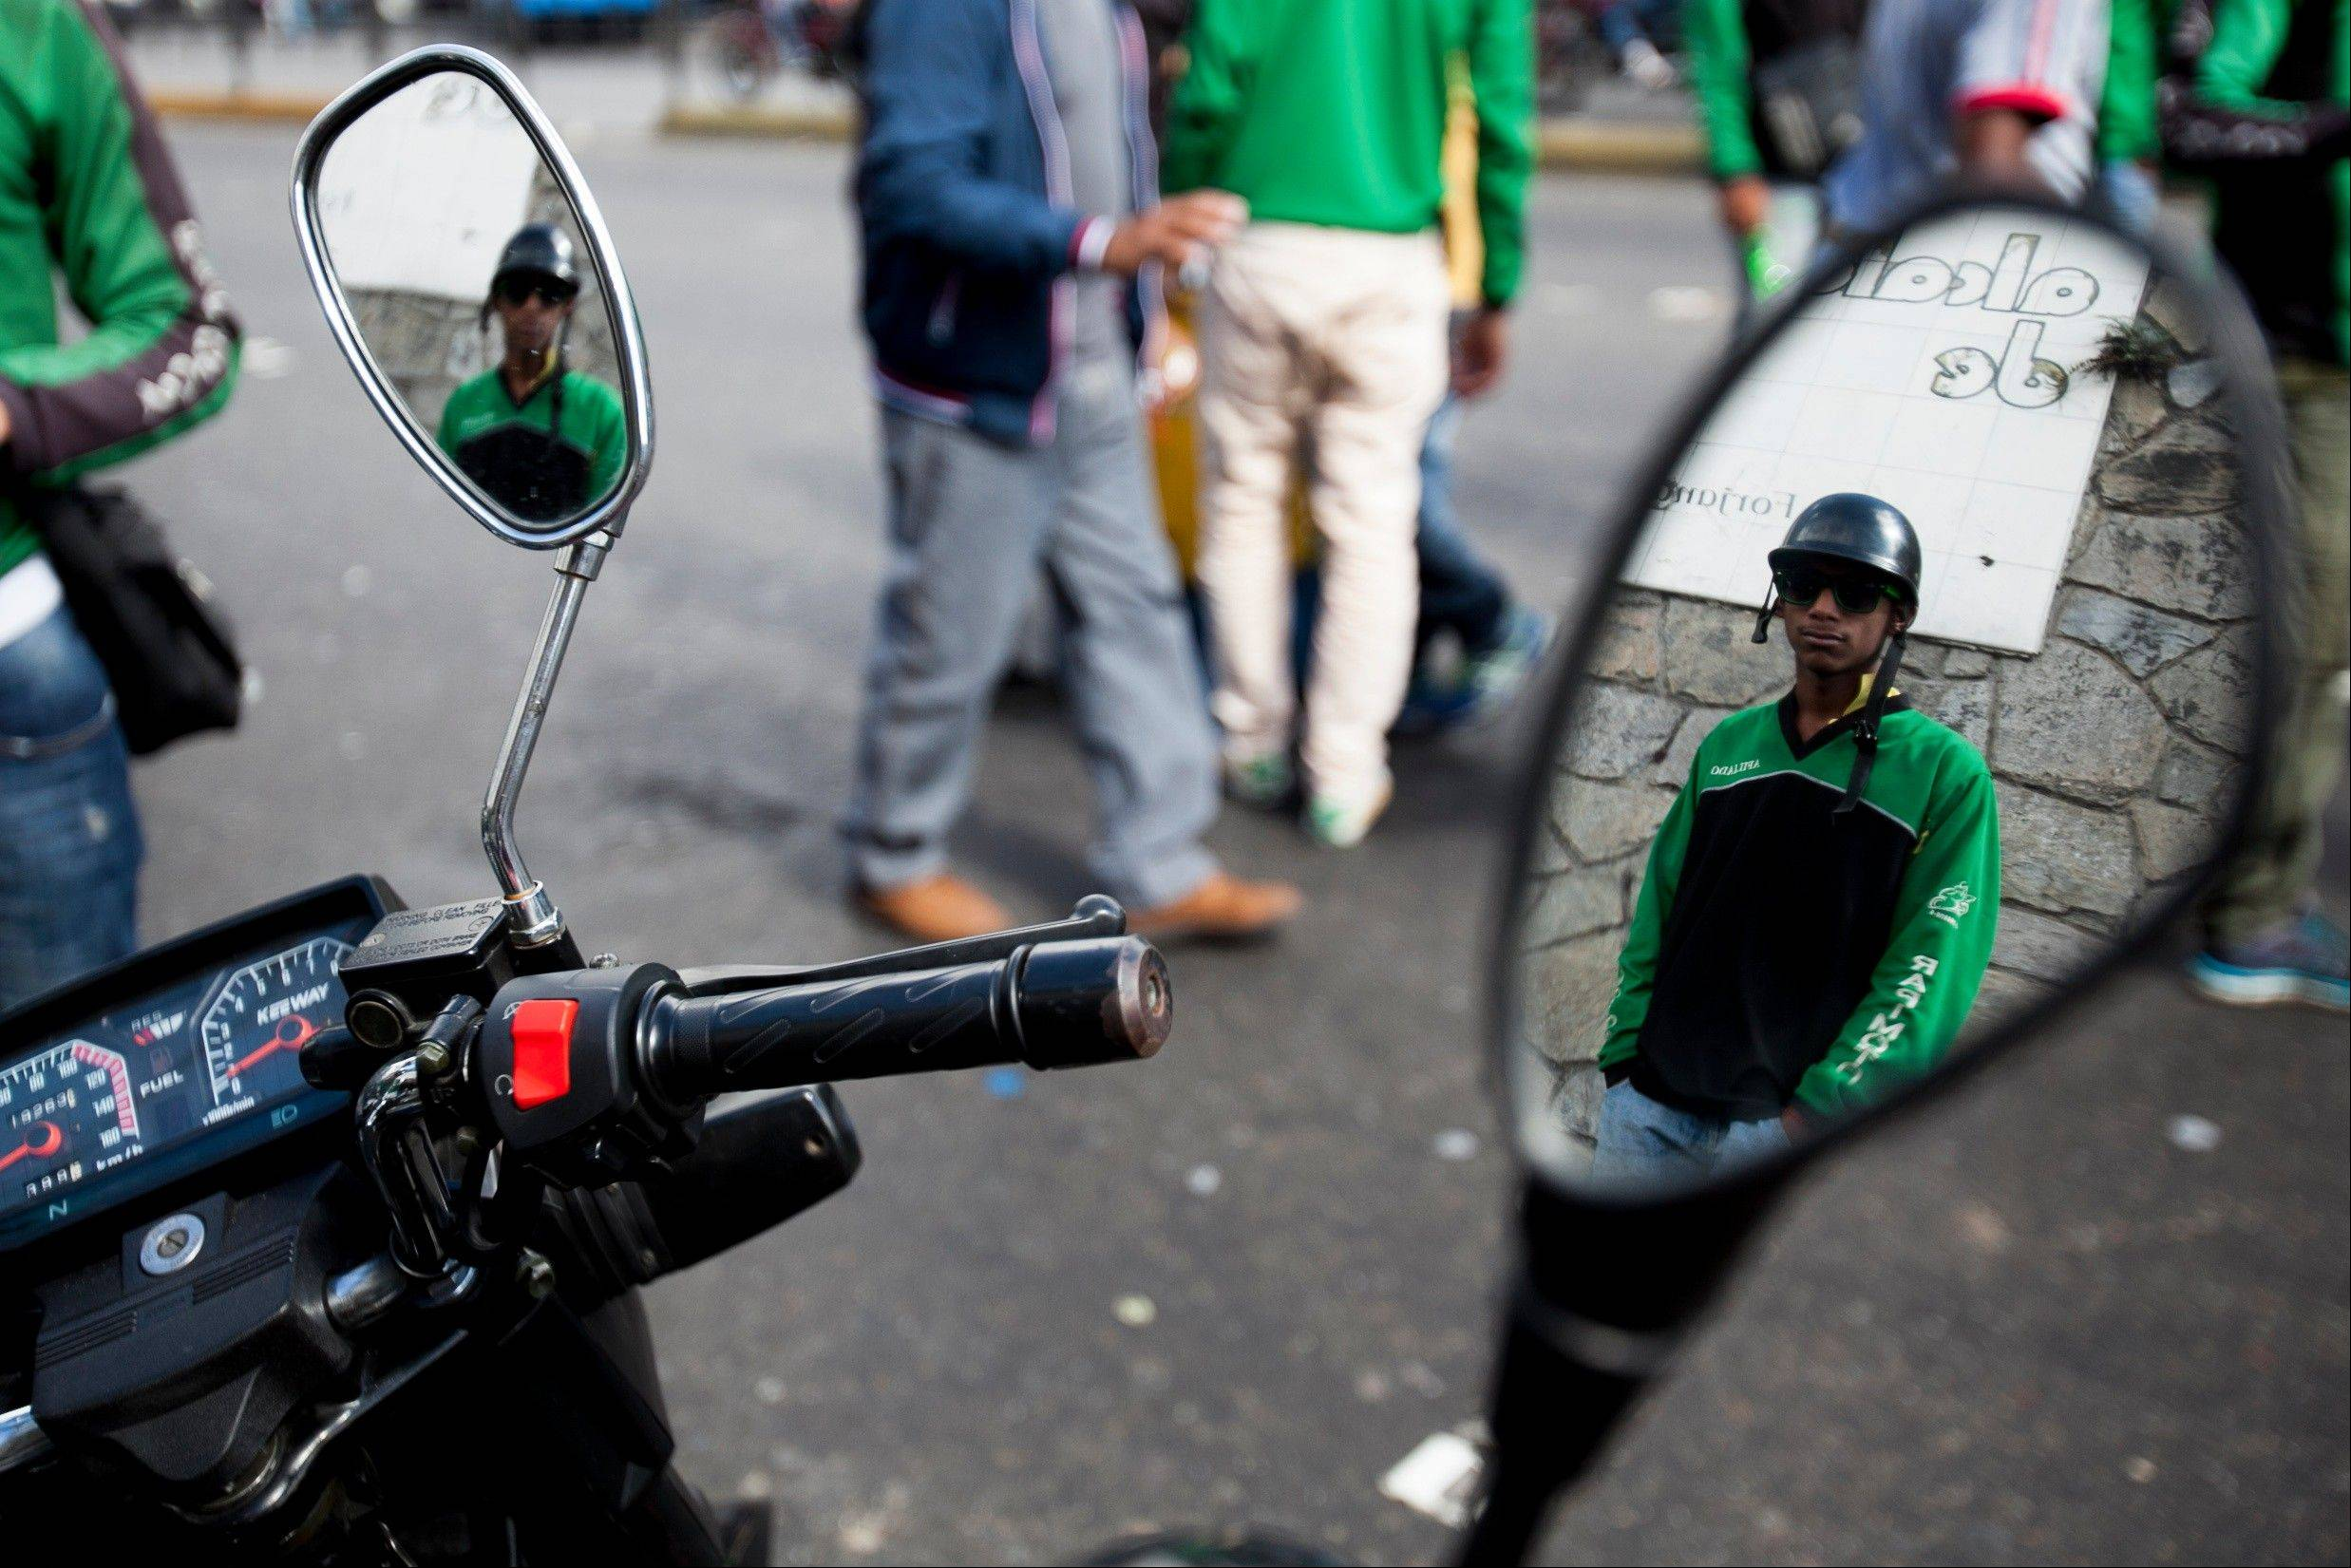 A motorcyclist is reflected in the mirror of a bike as he waits for the start of a protest Friday against a proposed nighttime curfew for two-wheelers in Caracas, Venezuela.